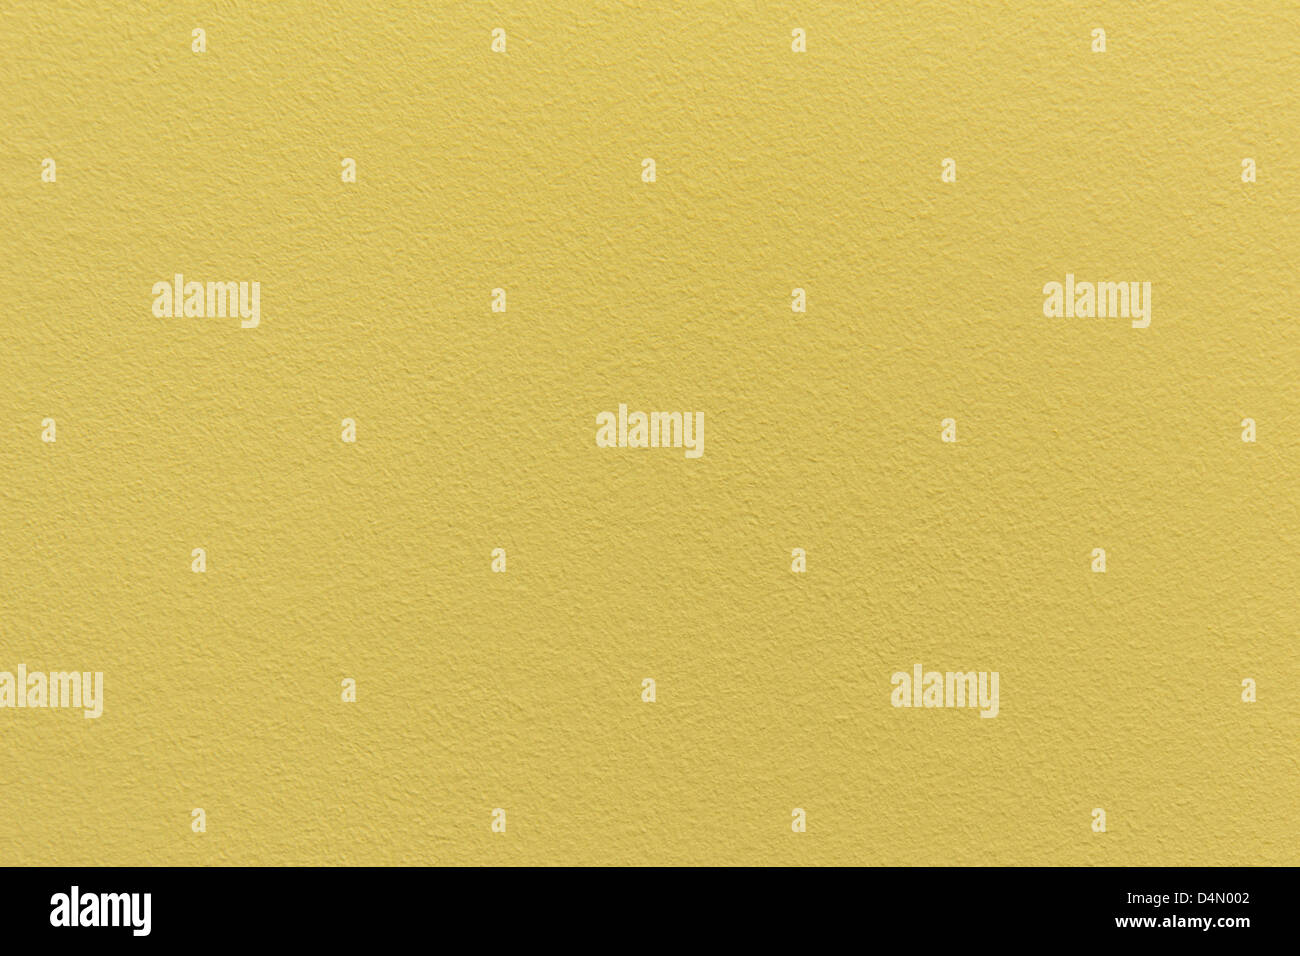 Painted Wall Panel Stock Photos & Painted Wall Panel Stock Images ...